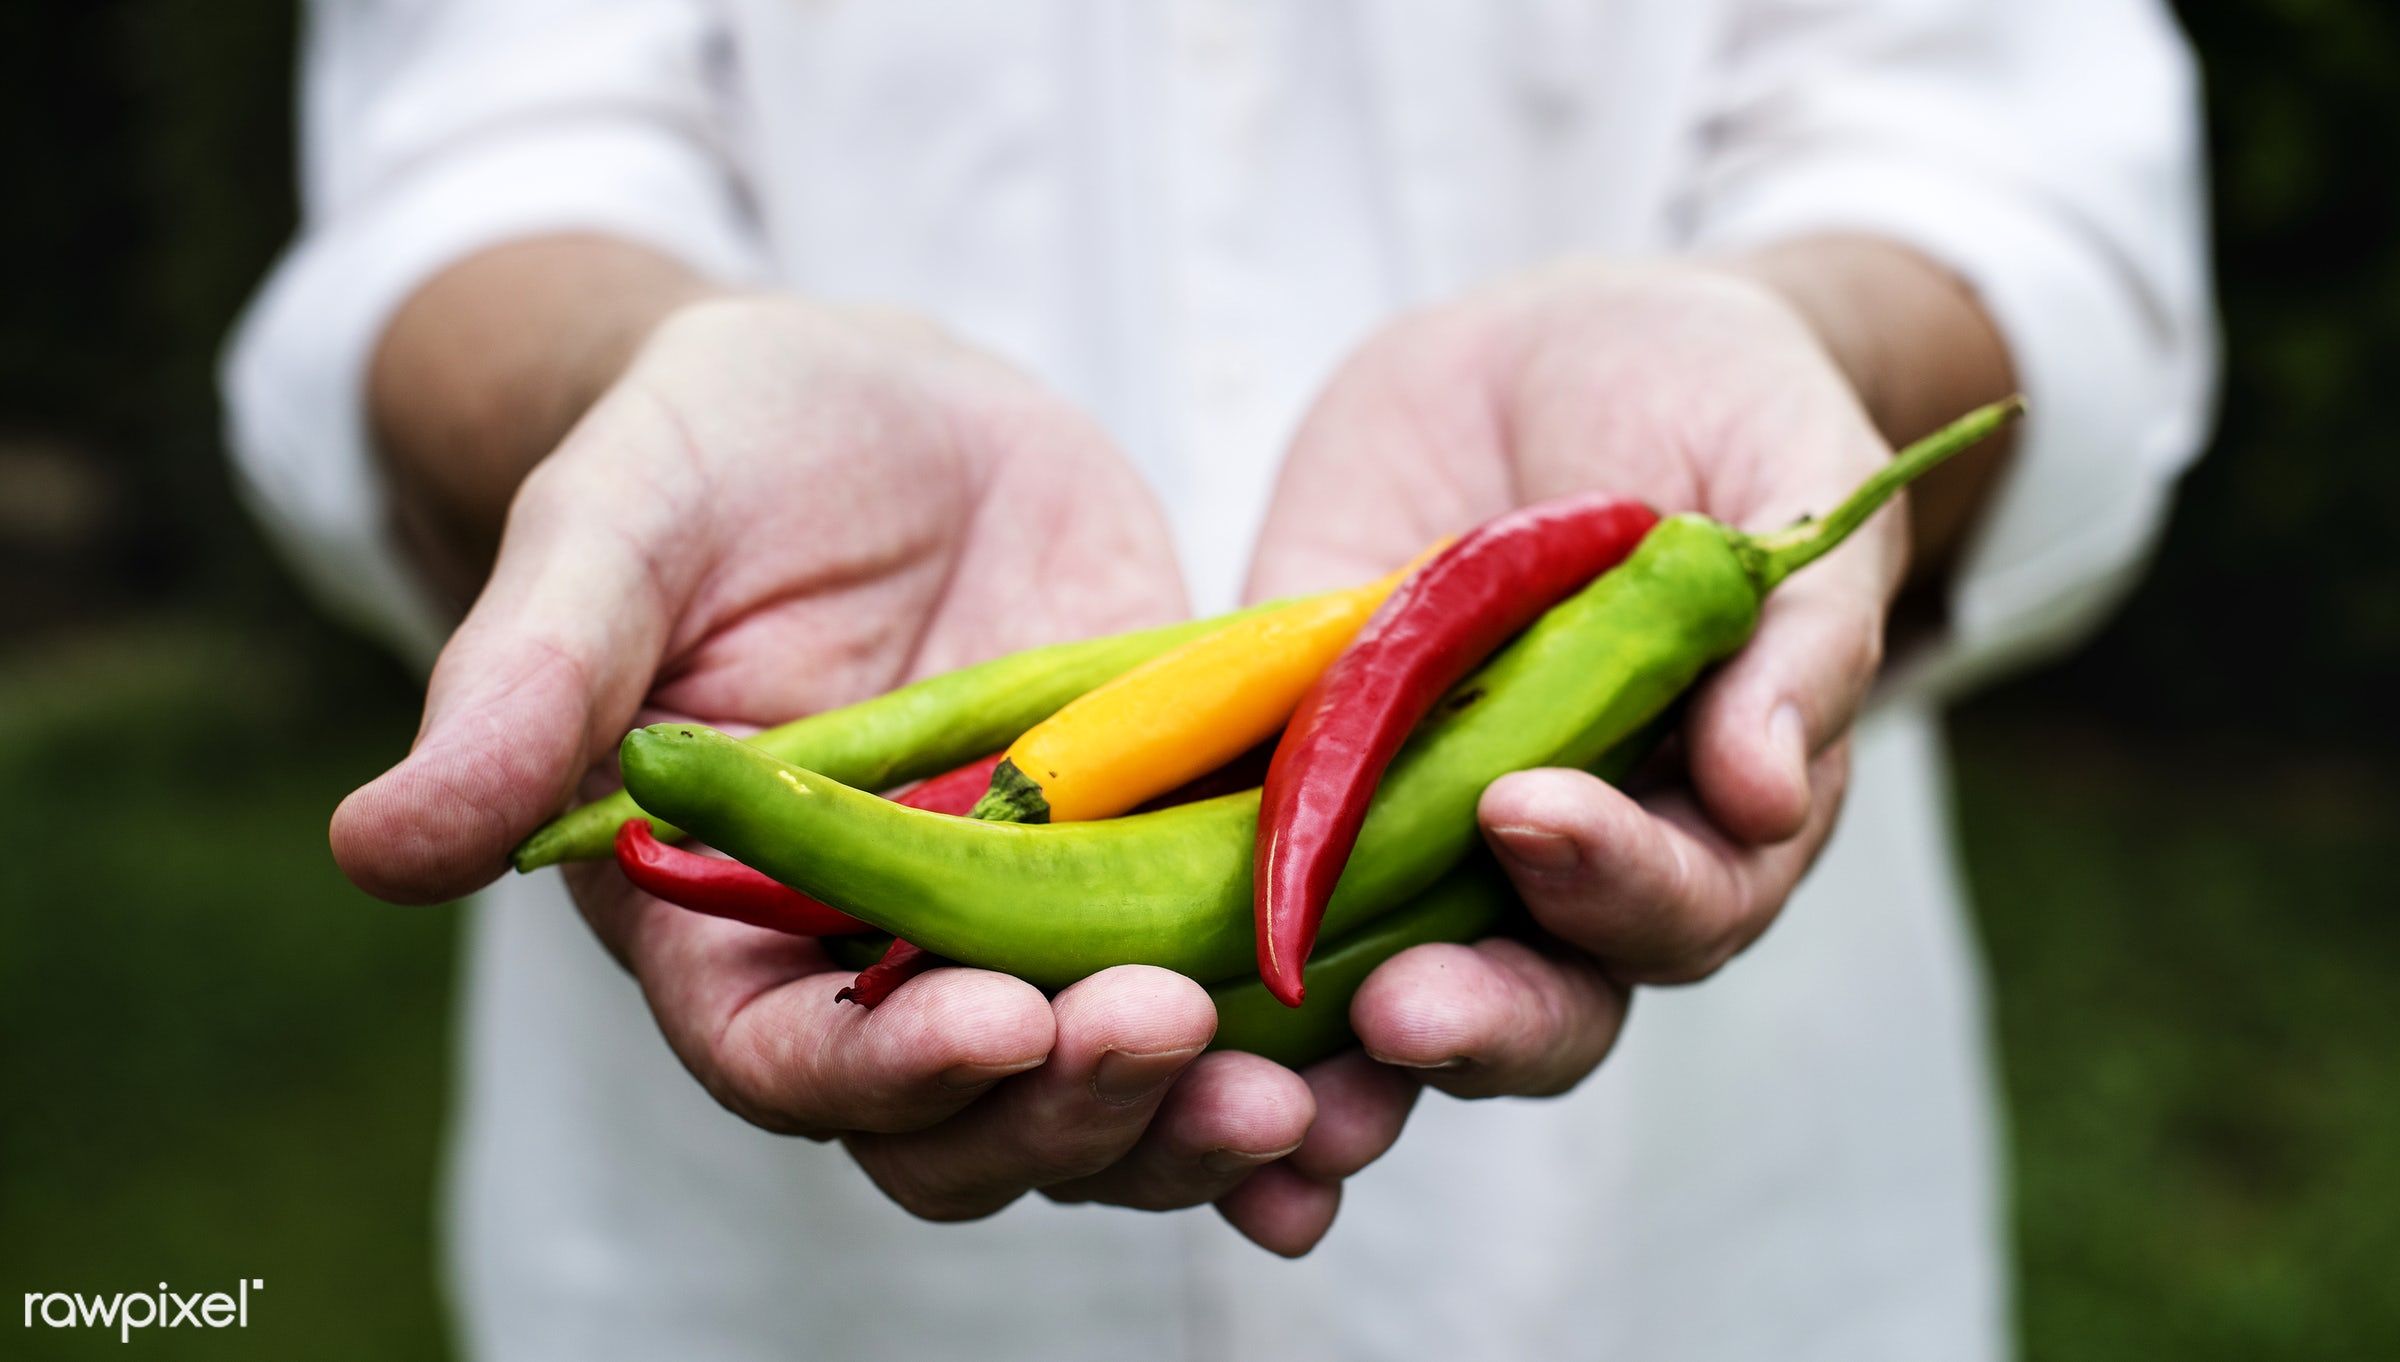 cayenne, holding, spice, nature, hands, chilli, closeup, mexican, chili, organic, food, healthy, harvest, vegetable, produce